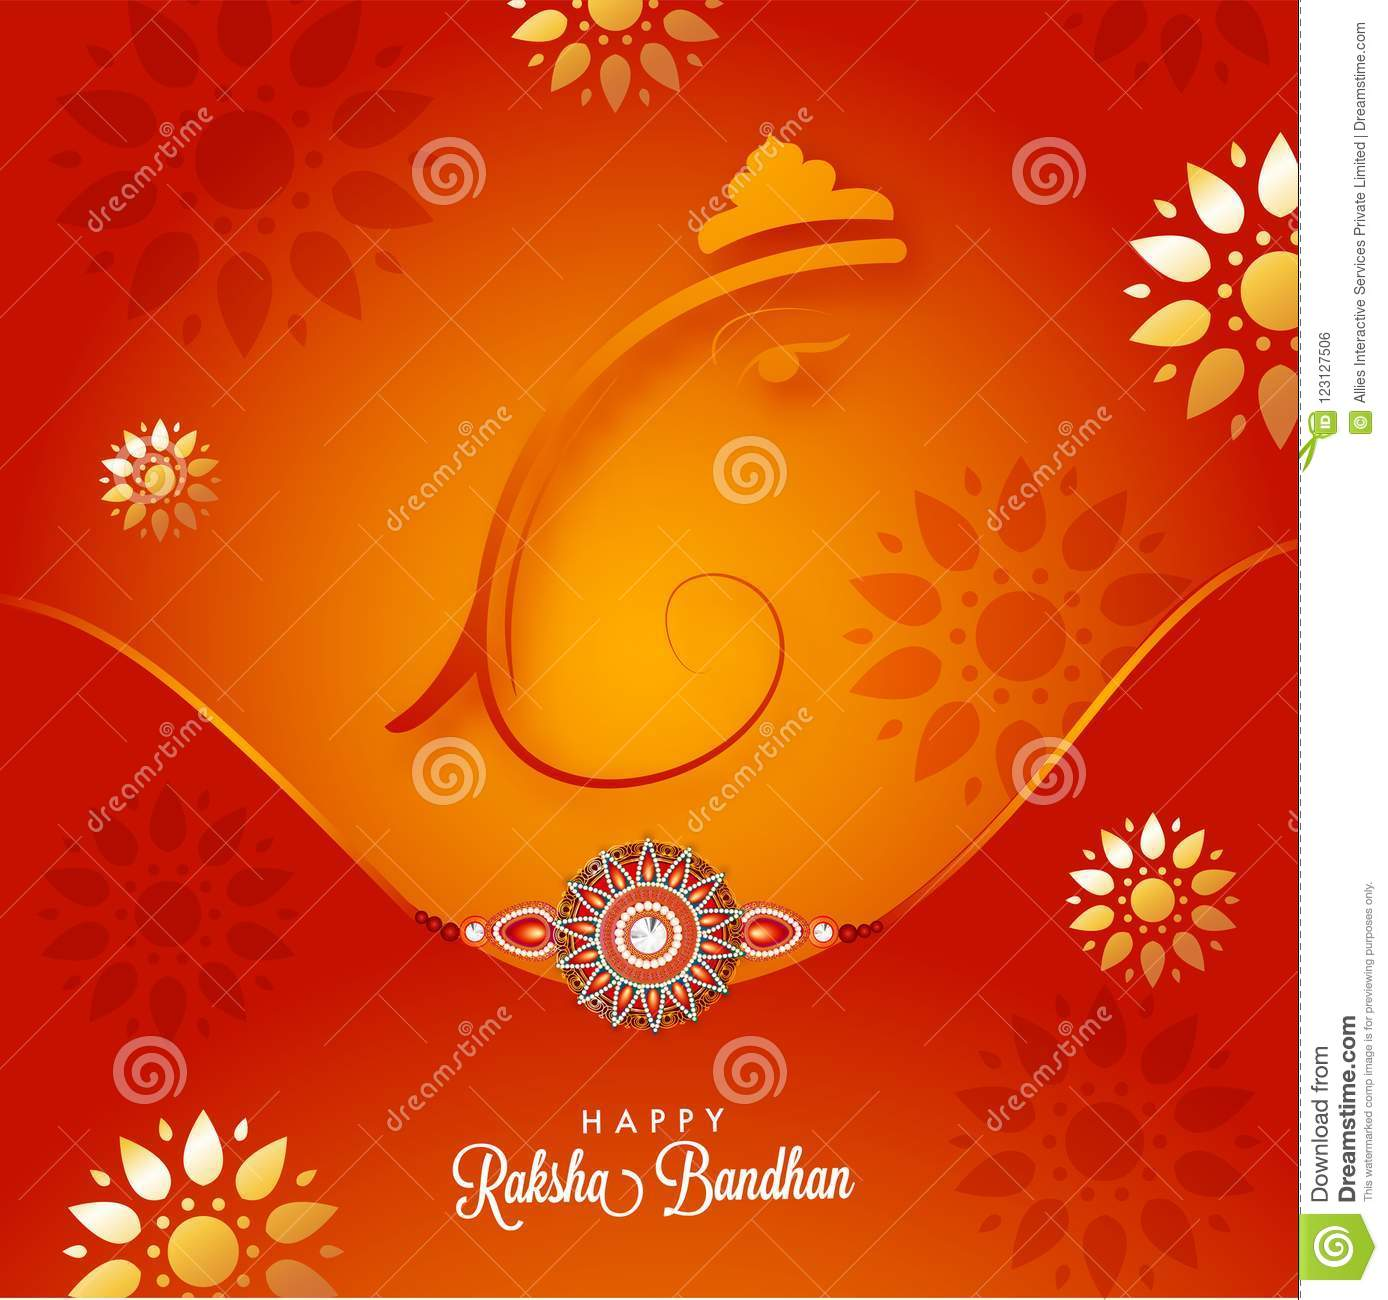 Raksha bandhan greeting card design stock illustration download raksha bandhan greeting card design stock illustration illustration of brother occasion m4hsunfo